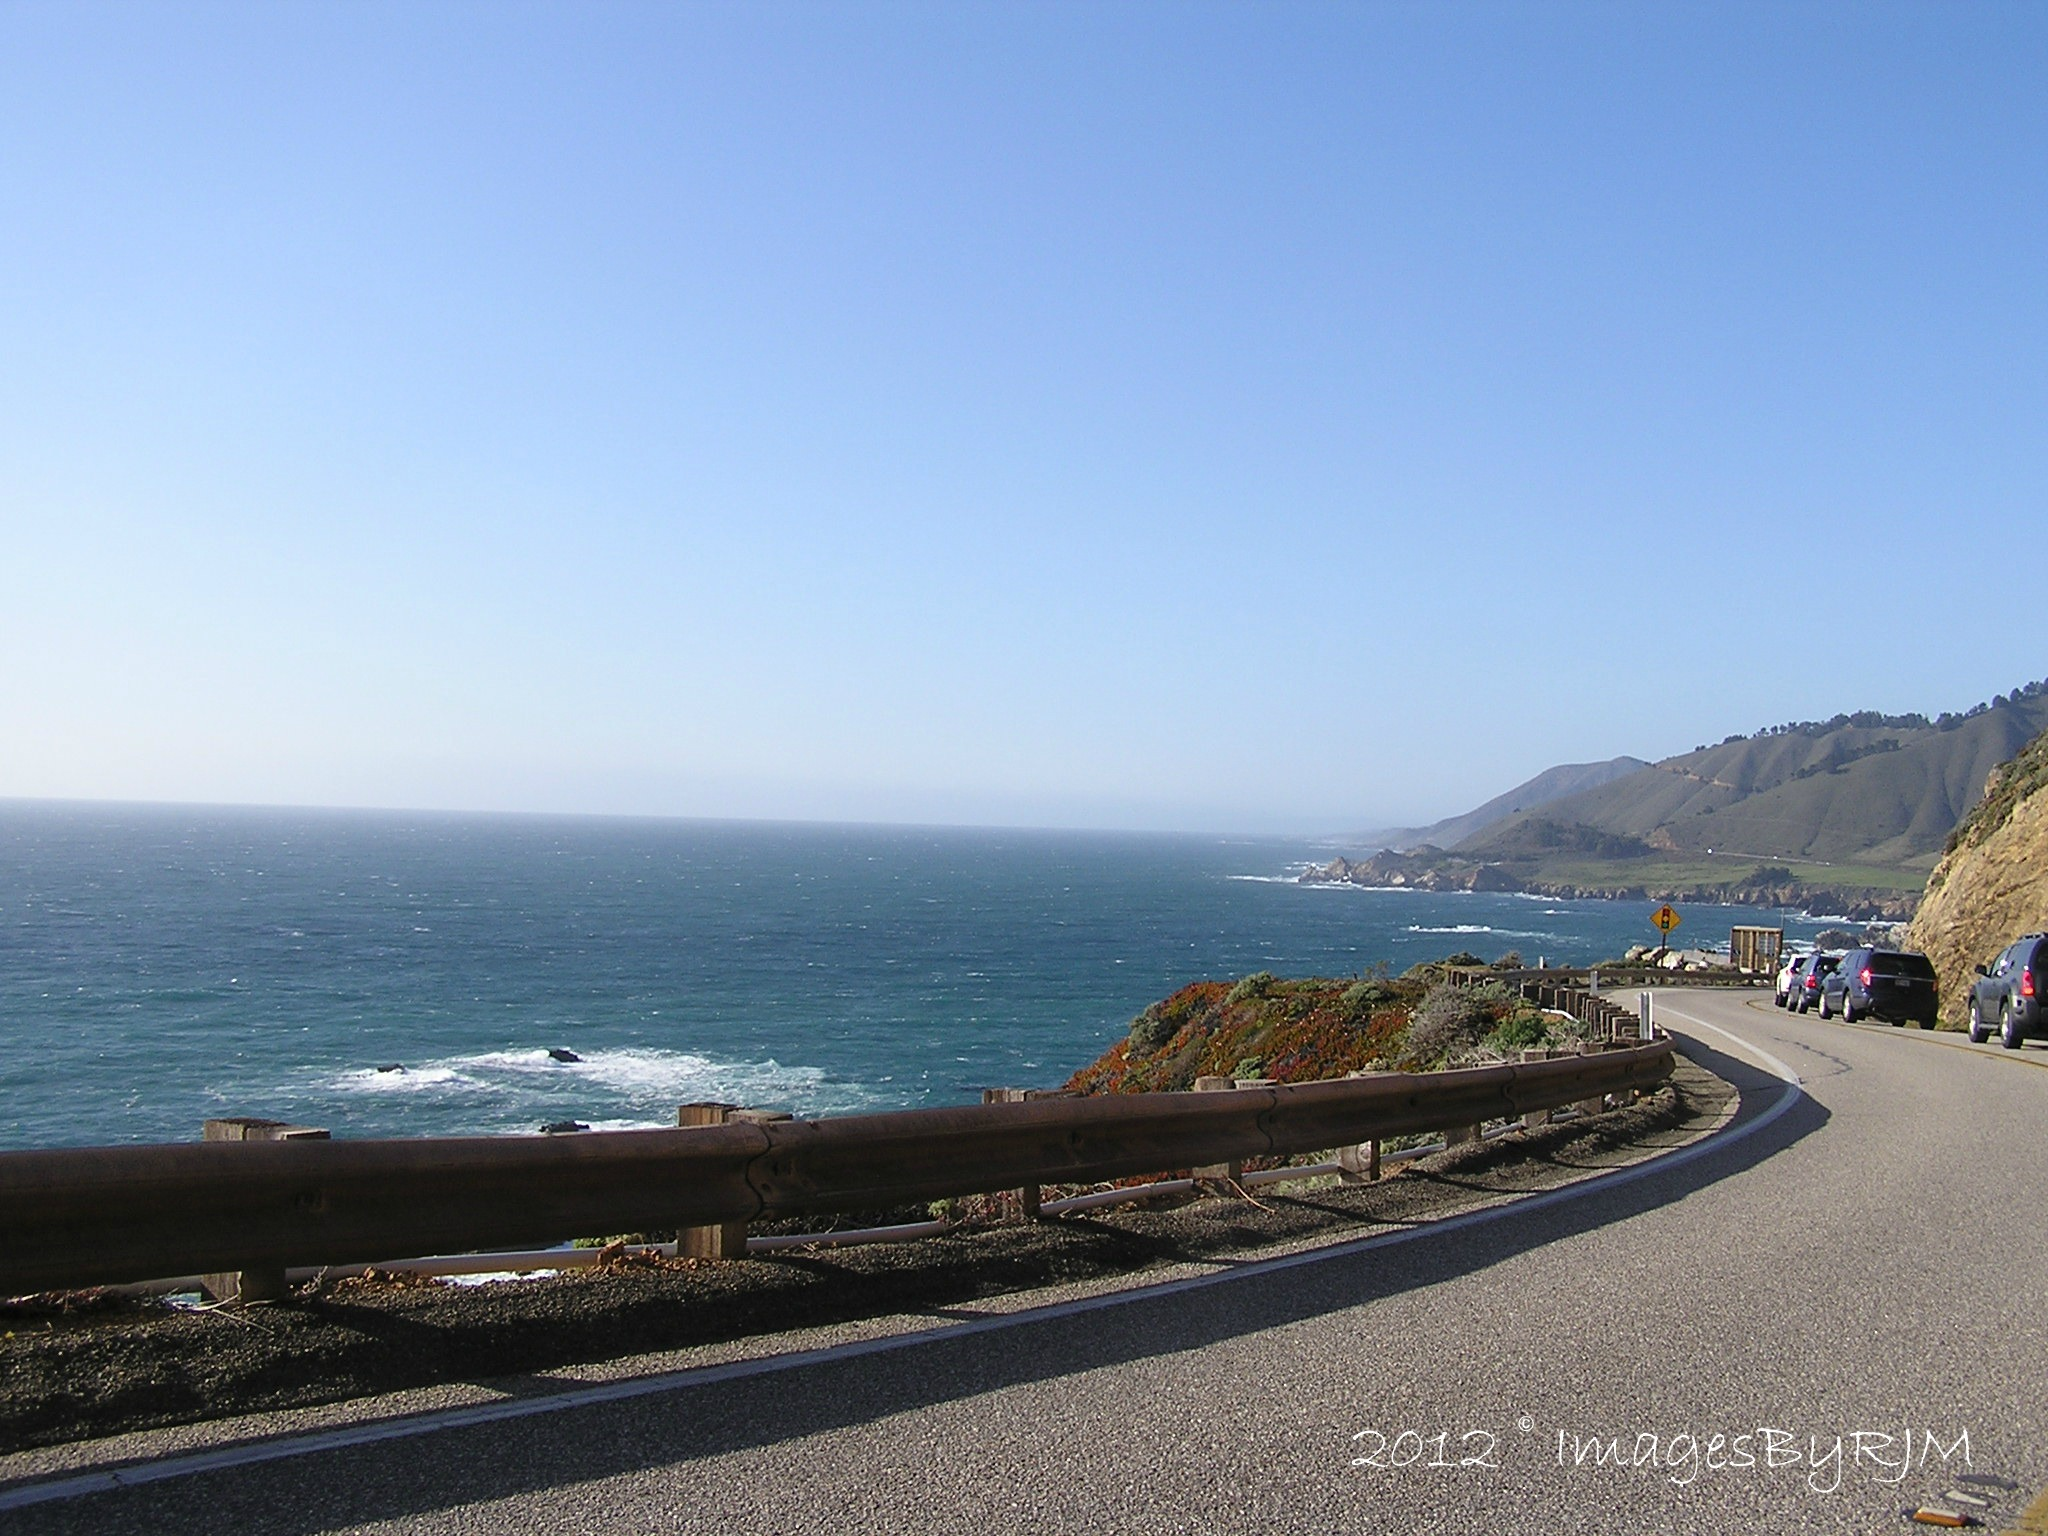 Traffic stopped on Pacific Coast Highway between Big Sur and Carmel, with view of ocean to the left.